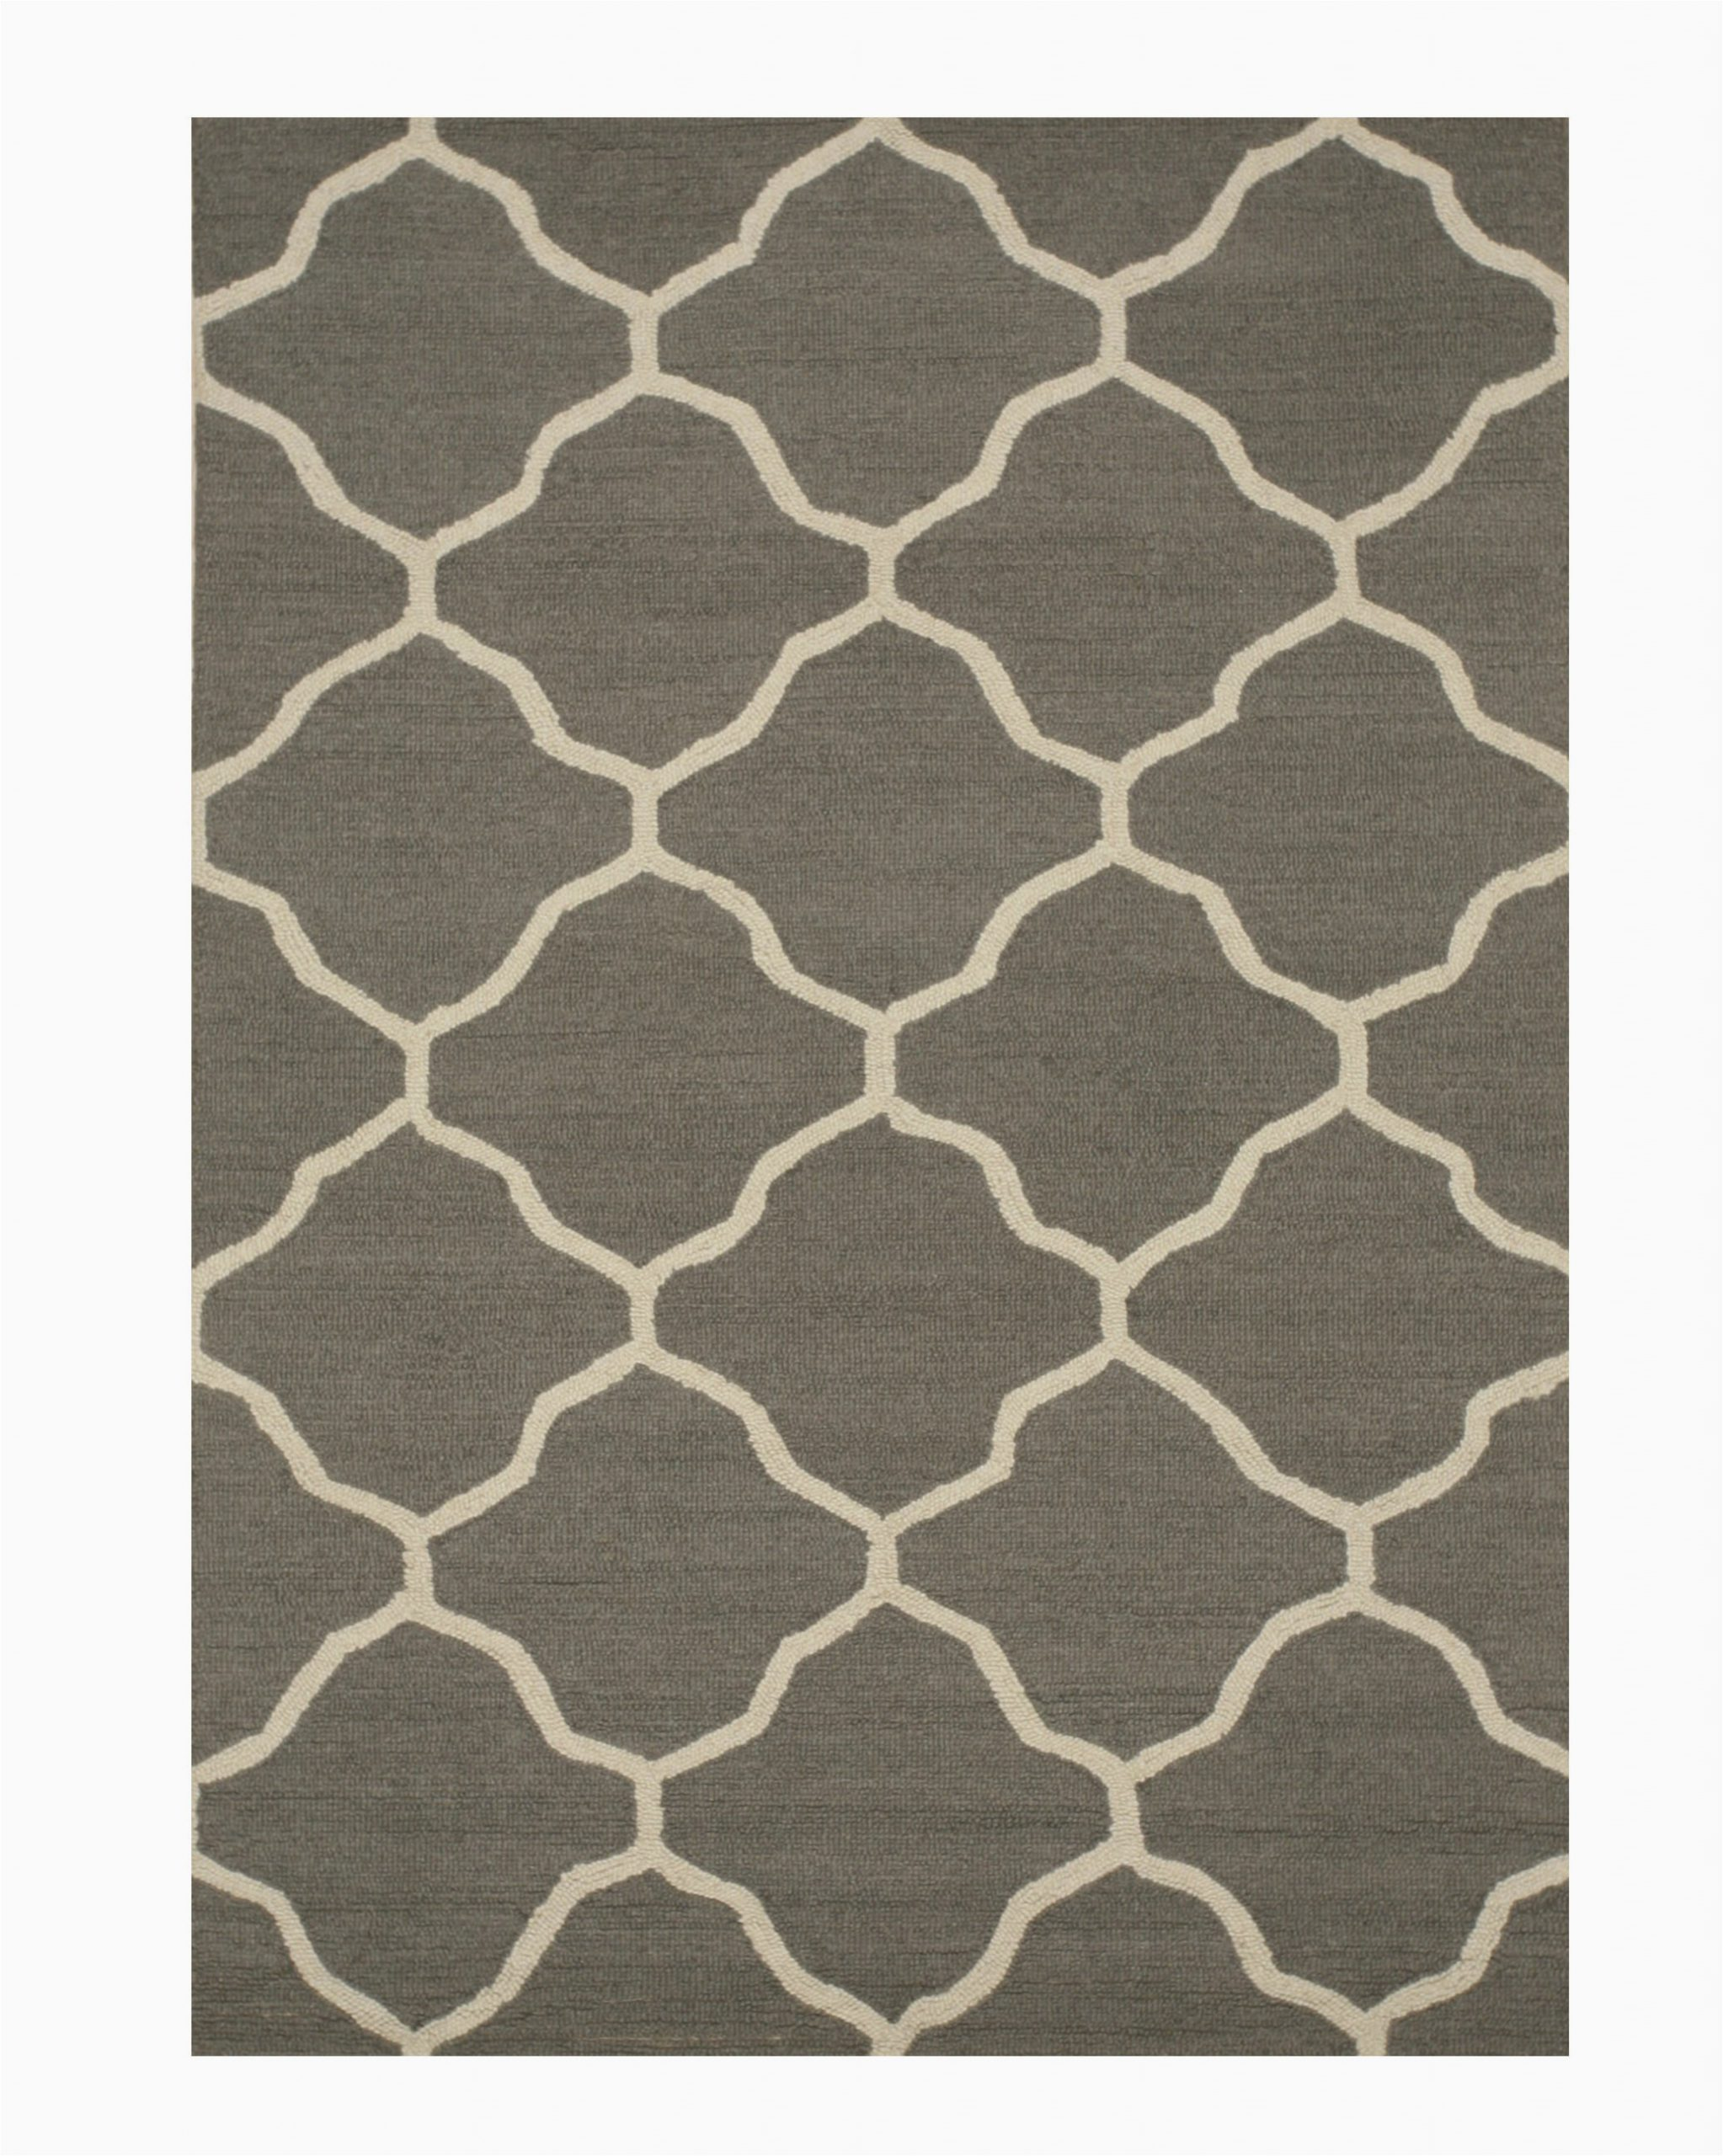 durrant handmade tufted 5 x 7 wool gray area rug